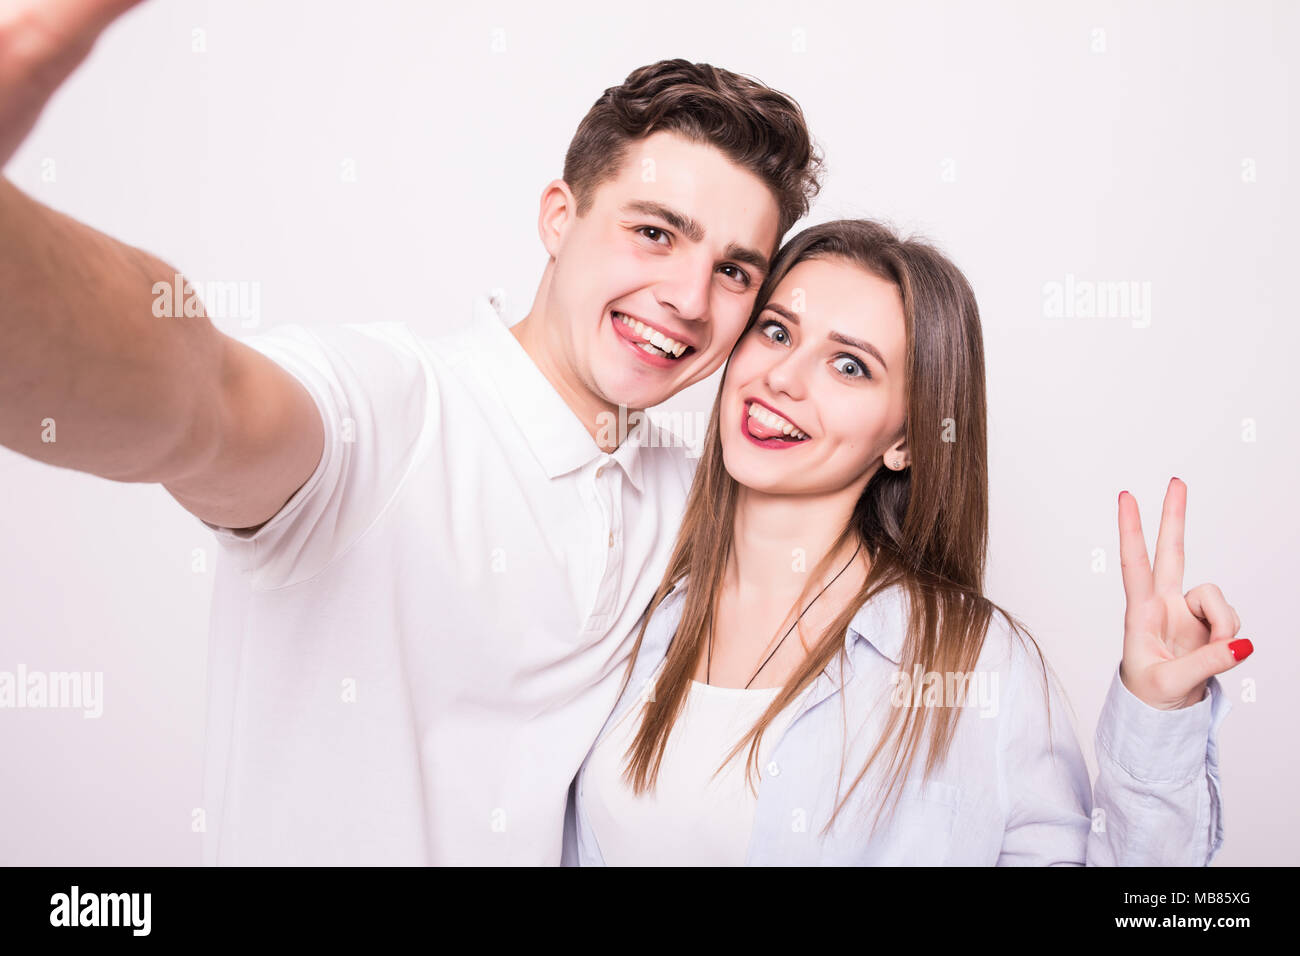 Handsome man making selfie with his pretty woman gesturing v-sign - Stock Image